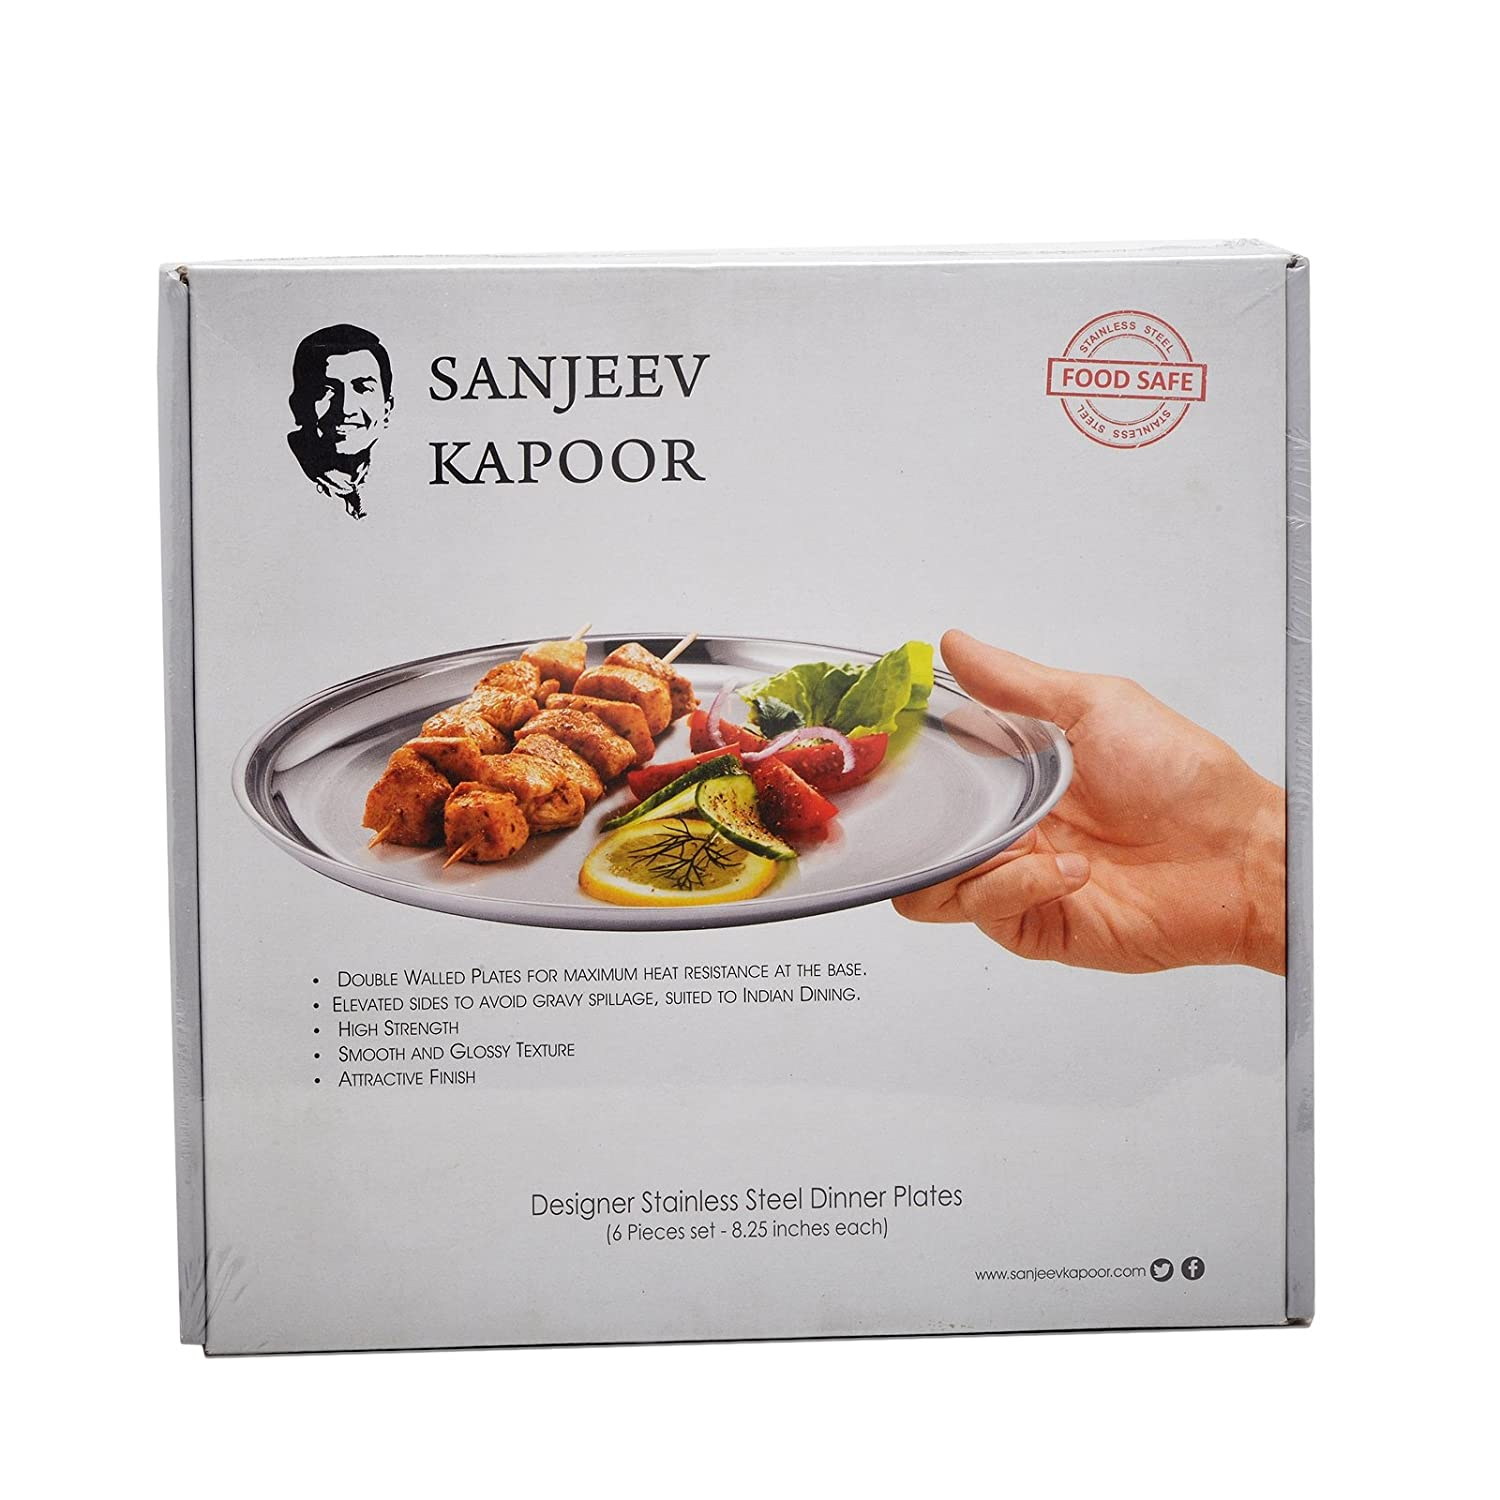 Buy sanjeev kapoor designer stainless steel dinner plates in silver buy sanjeev kapoor designer stainless steel dinner plates in silver mirror matt finish 825 6 pcs set online at low prices in india amazon forumfinder Image collections